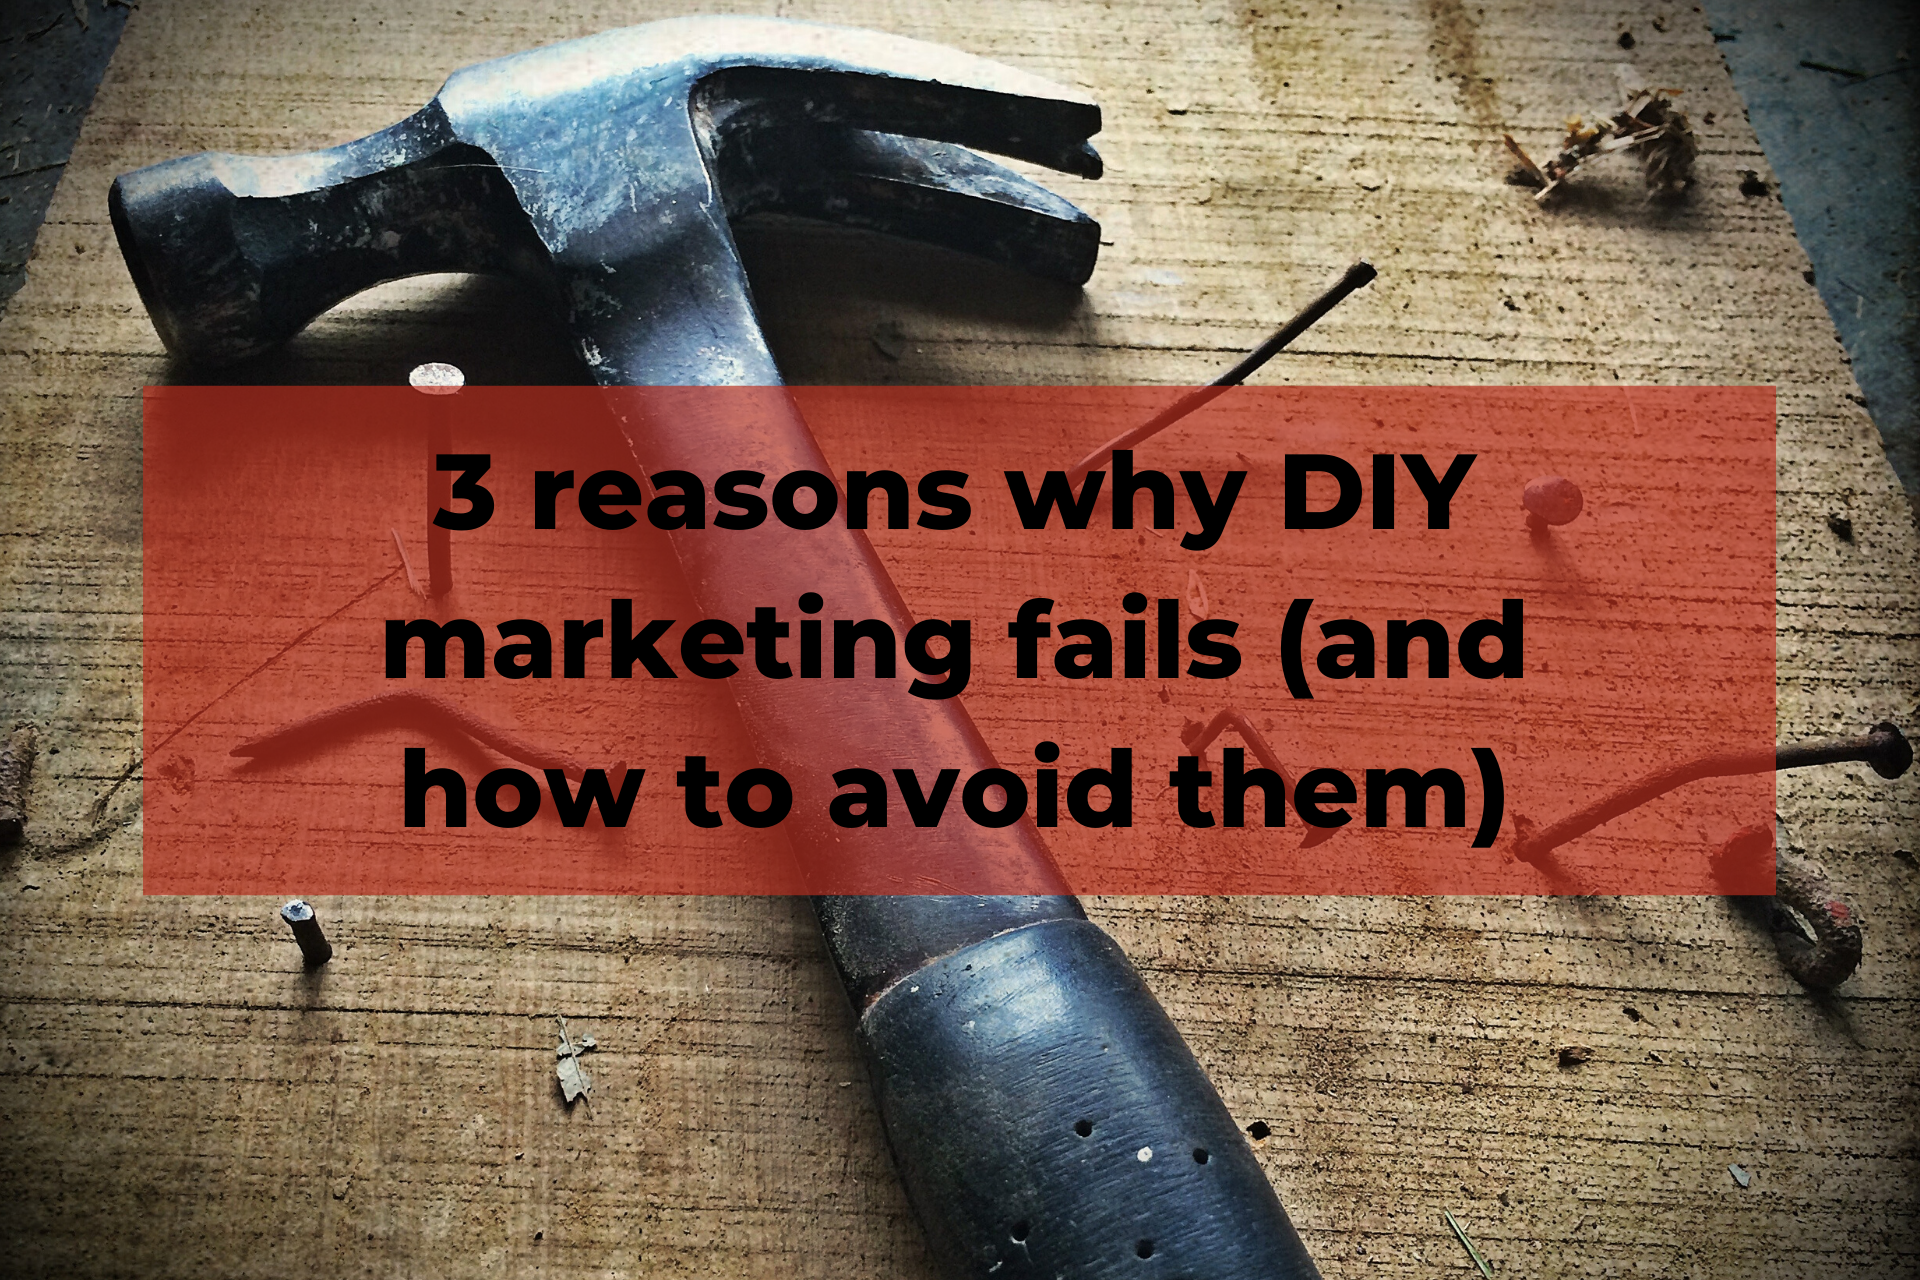 Reasons-why-DIY-marketing-fails